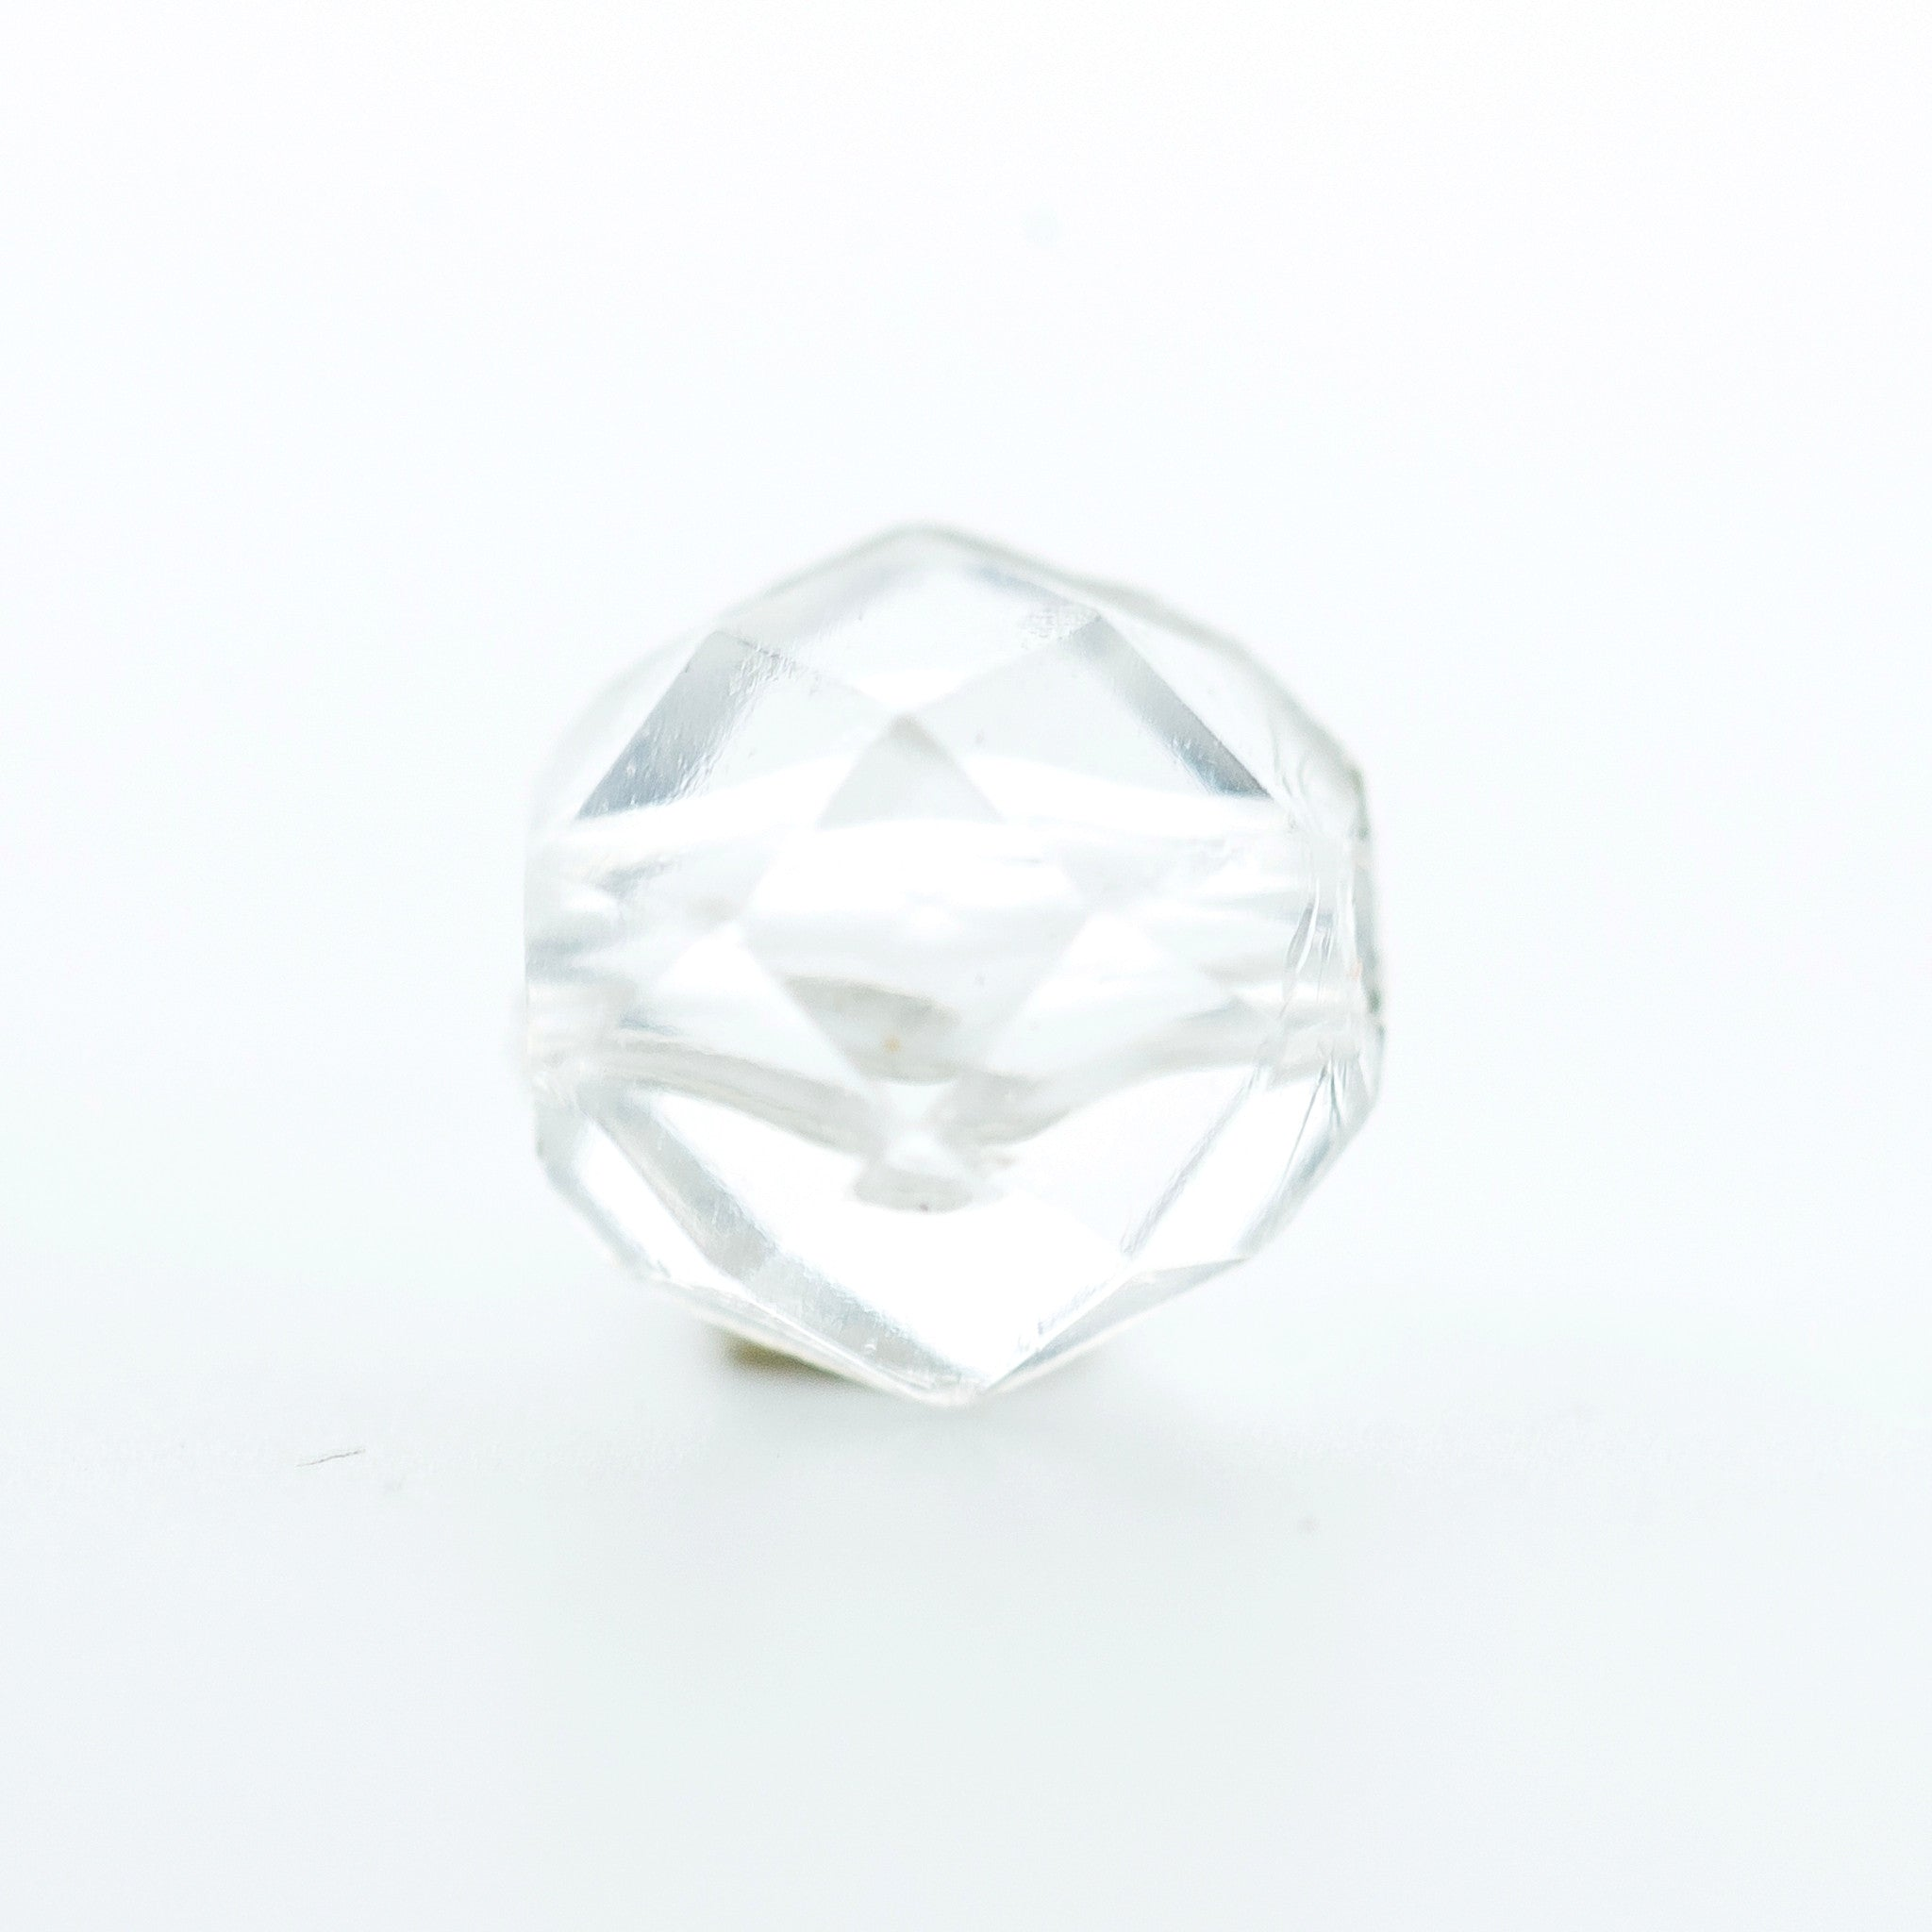 6MM Crystal Faceted Round Bead (400 pieces)